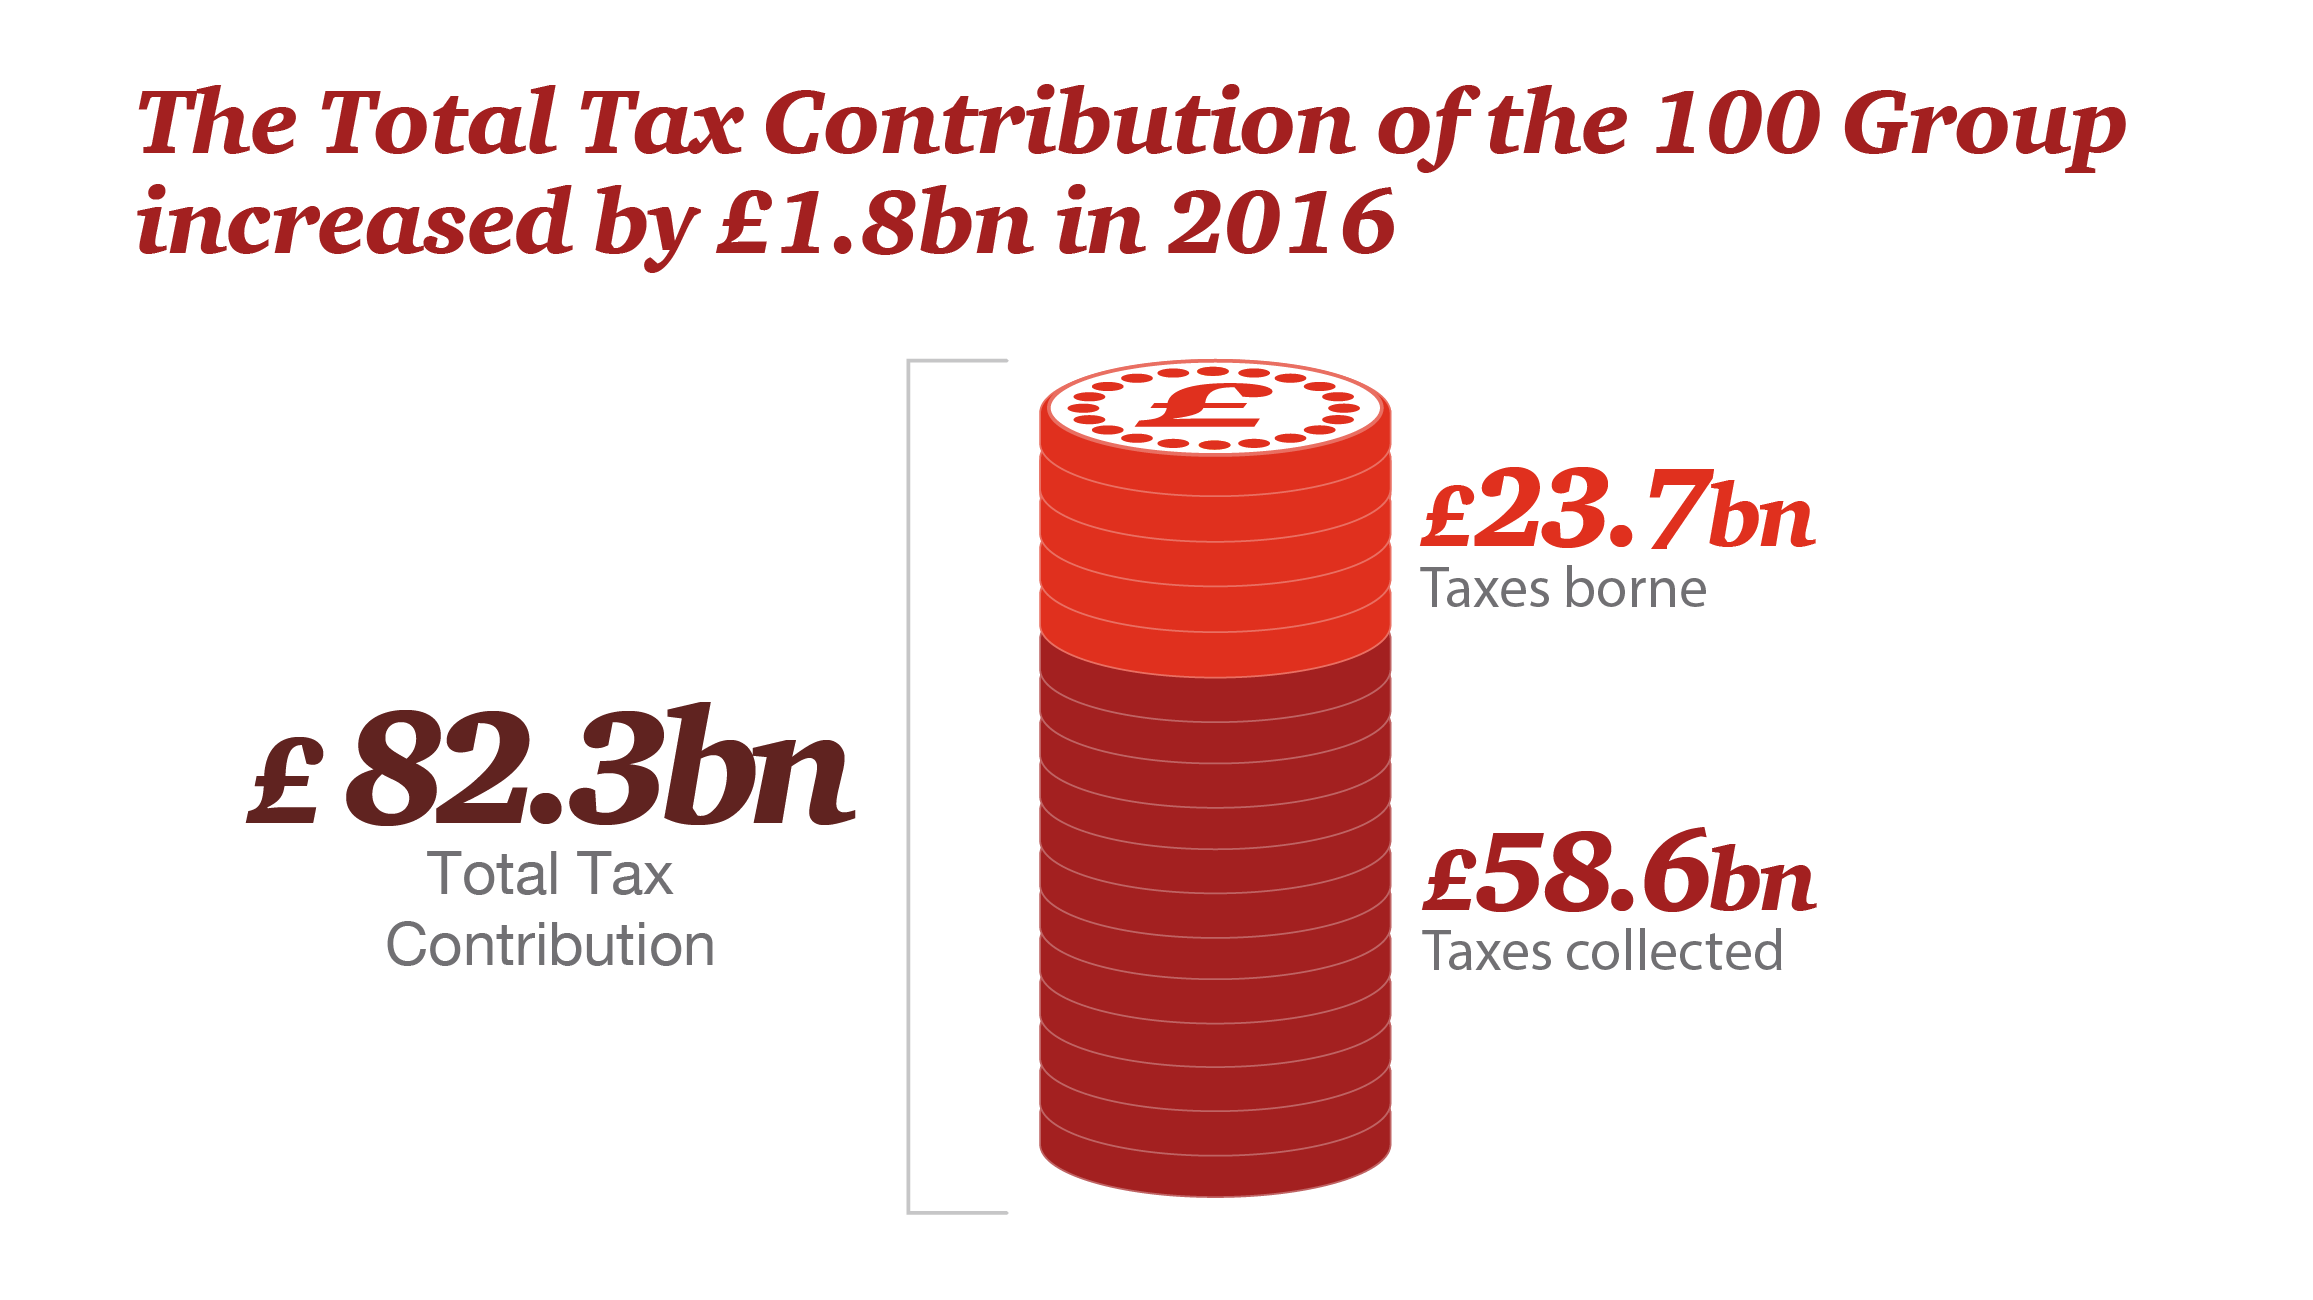 The Total Tax Contribution of the 100 Group increase by £1.8bn in 2016